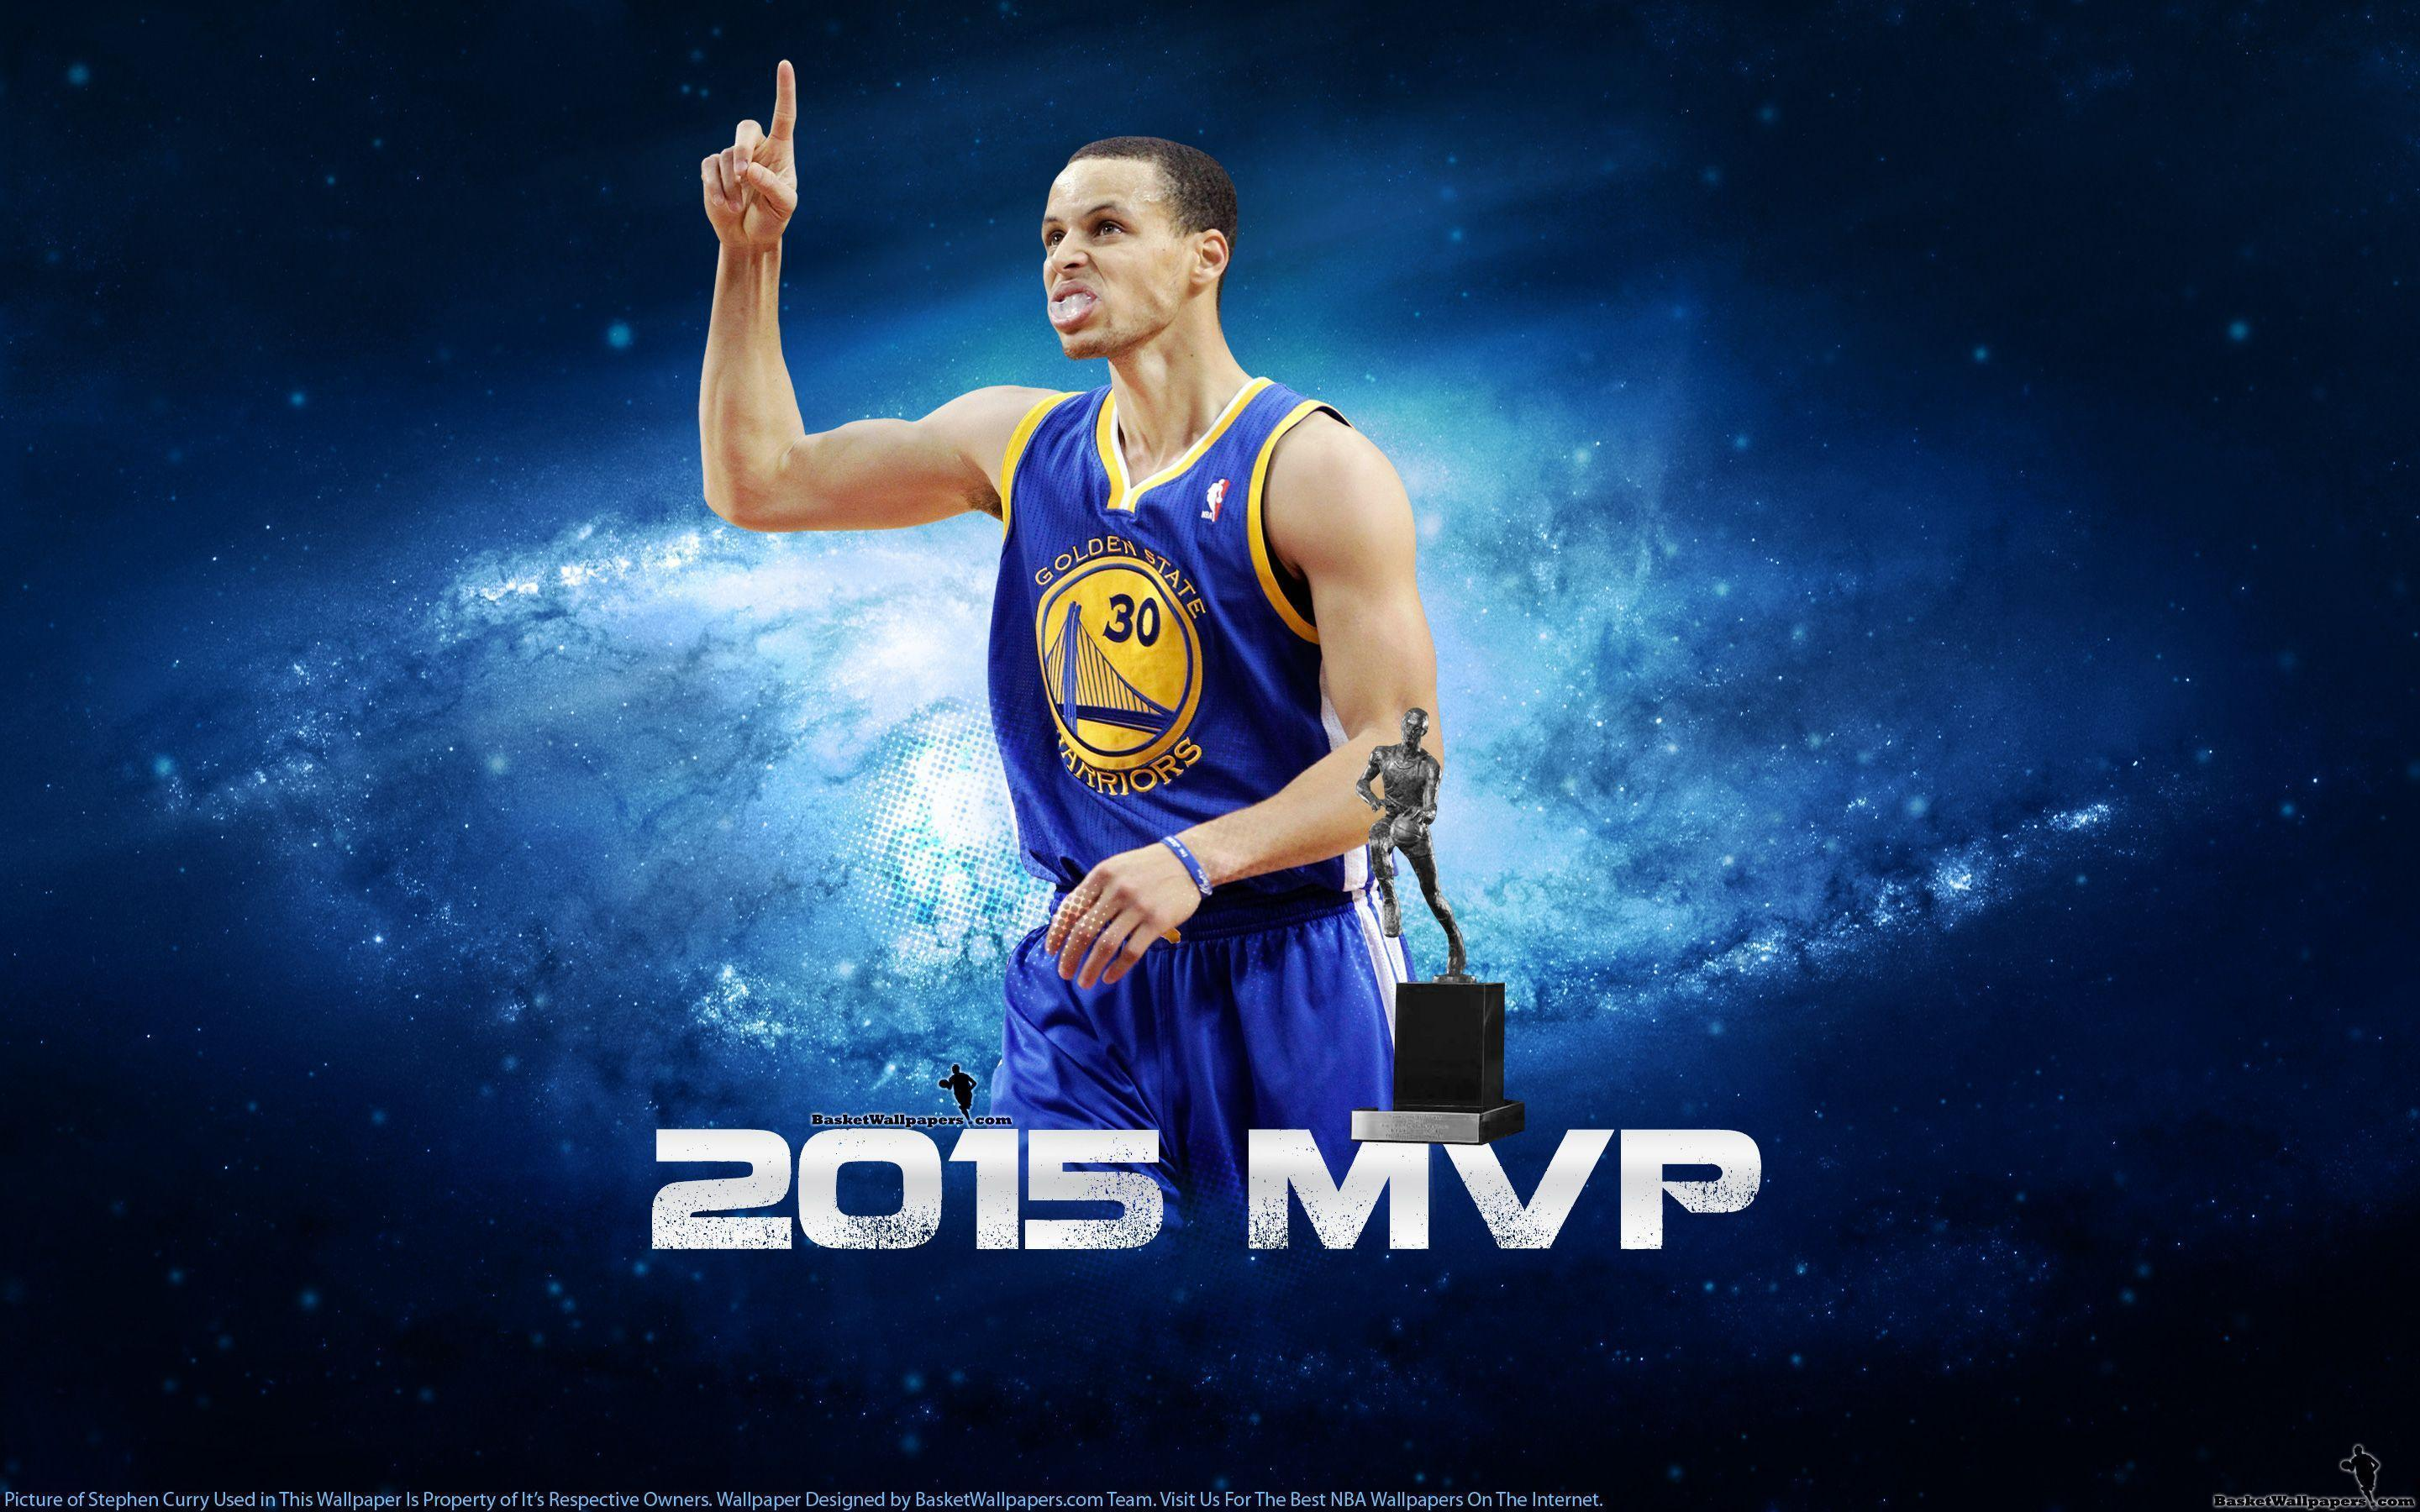 Stephen Curry 2017 Wallpapers - Wallpaper Cave